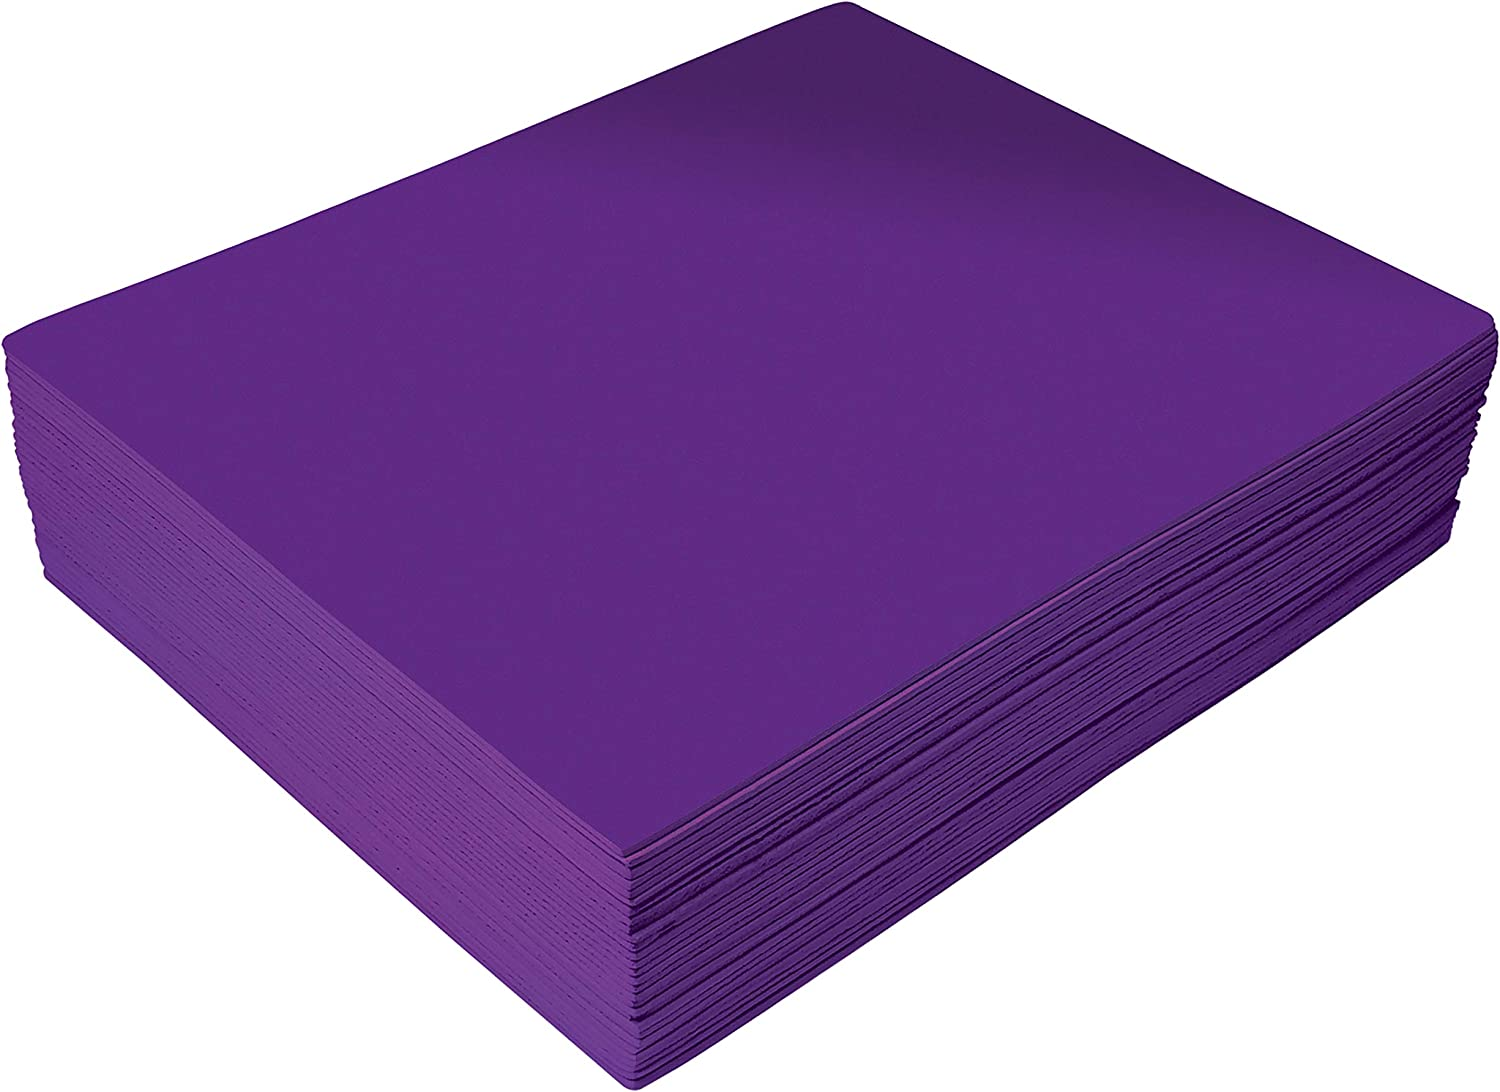 Purple EVA Foam Sheets, 30 Pack, 2mm Thick, 9 x 12 Inch, by Better Office Products, Purple Color, for Arts and Crafts, 30 Sheets Bulk Pack